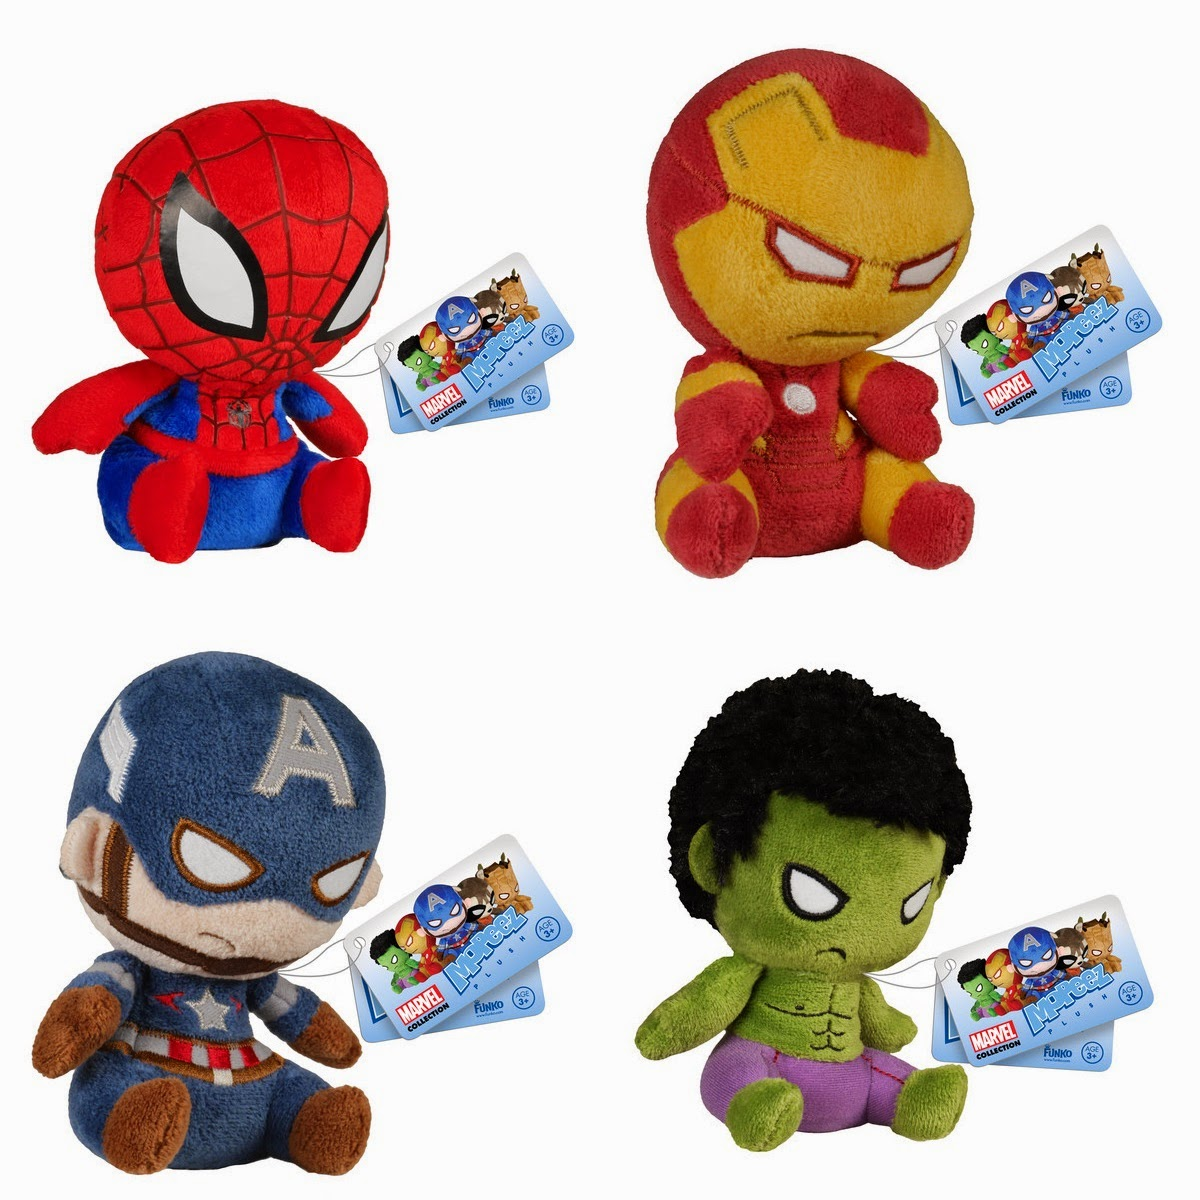 Marvel Mopeez Plush Figures by Funko - Spider-Man, Iron Man, Captain America & Hulk